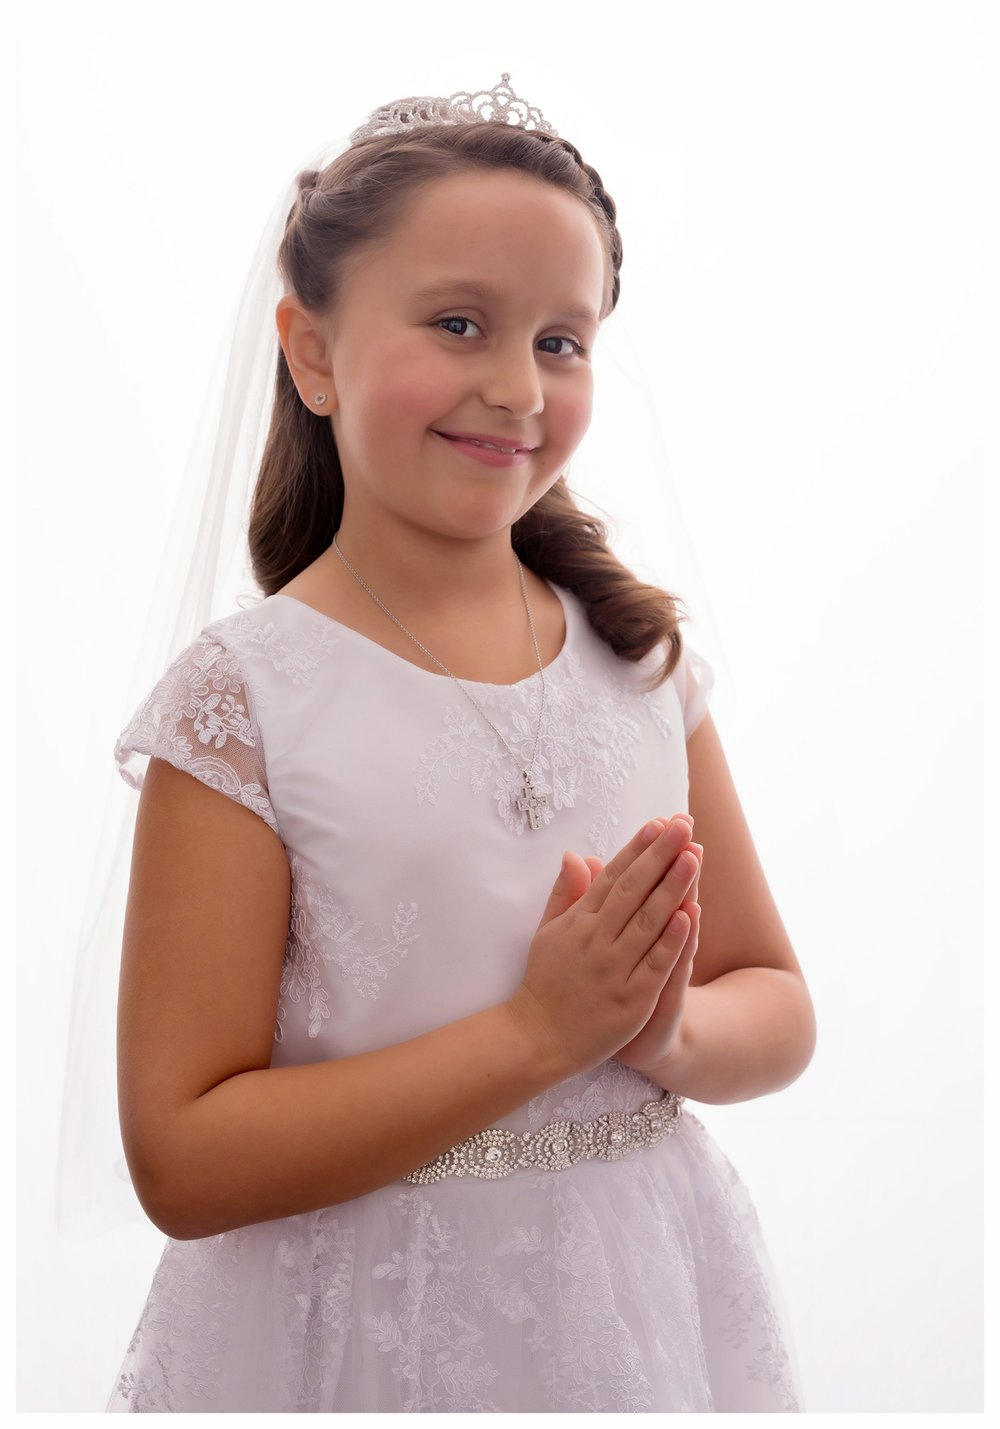 sofia communion-30 high key RFPonloine.jpg